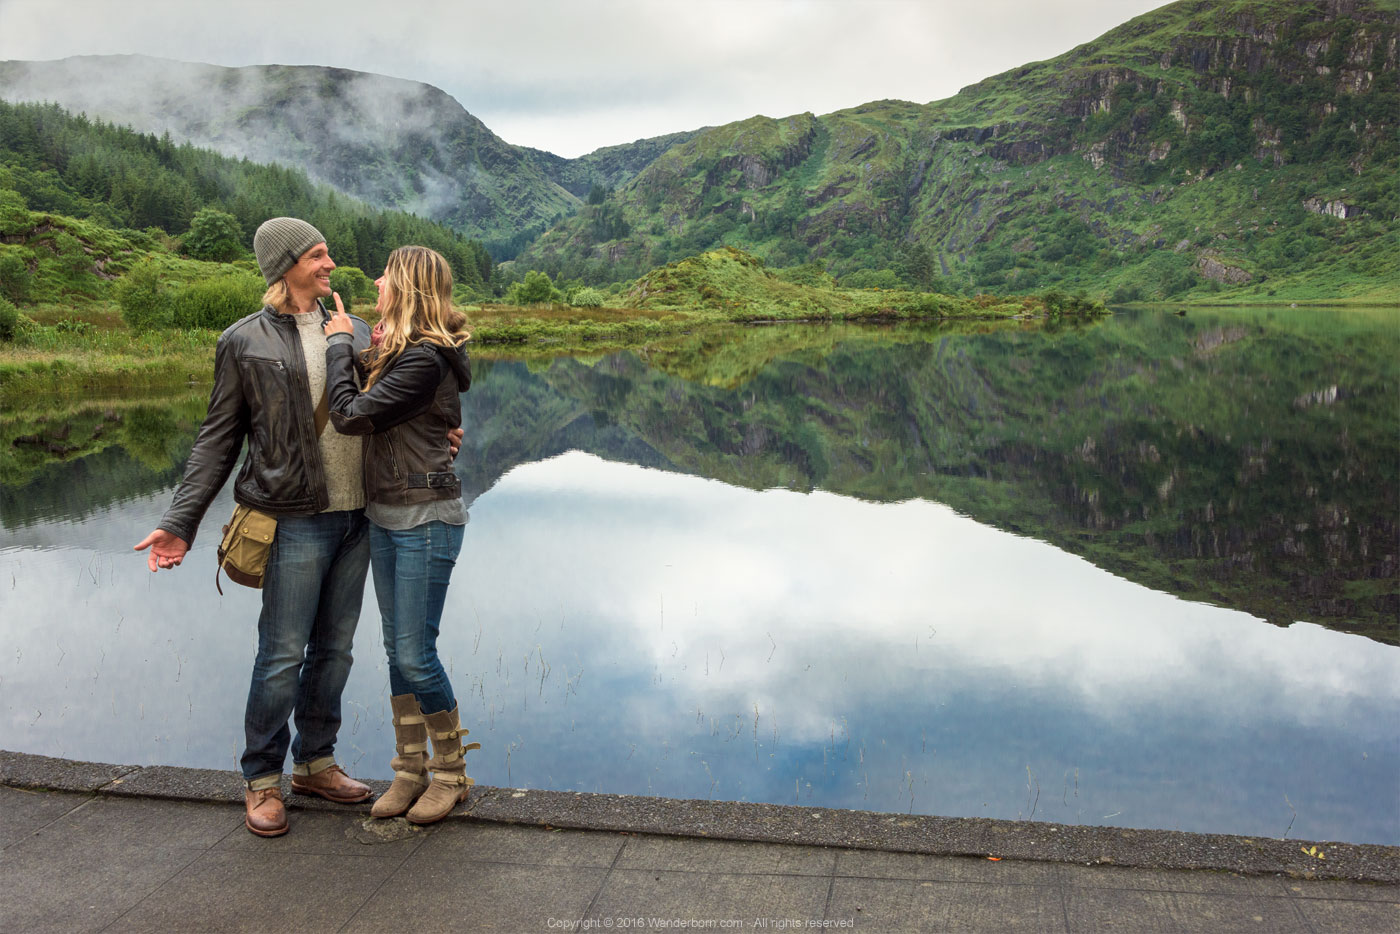 Shenanigans at Lake Gougane Barra